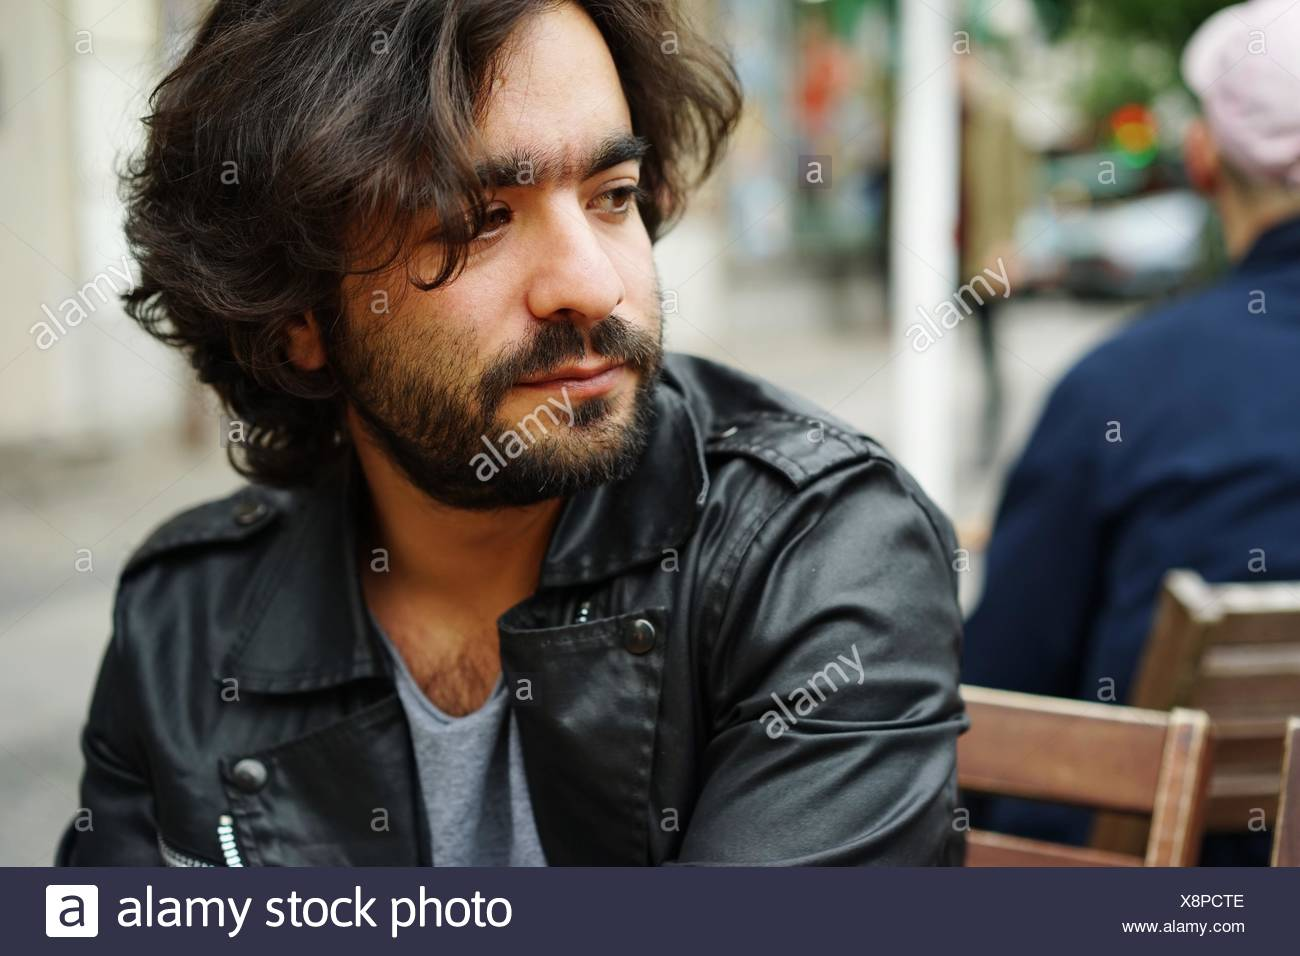 Man Looking Away At Sidewalk Cafe - Stock Image